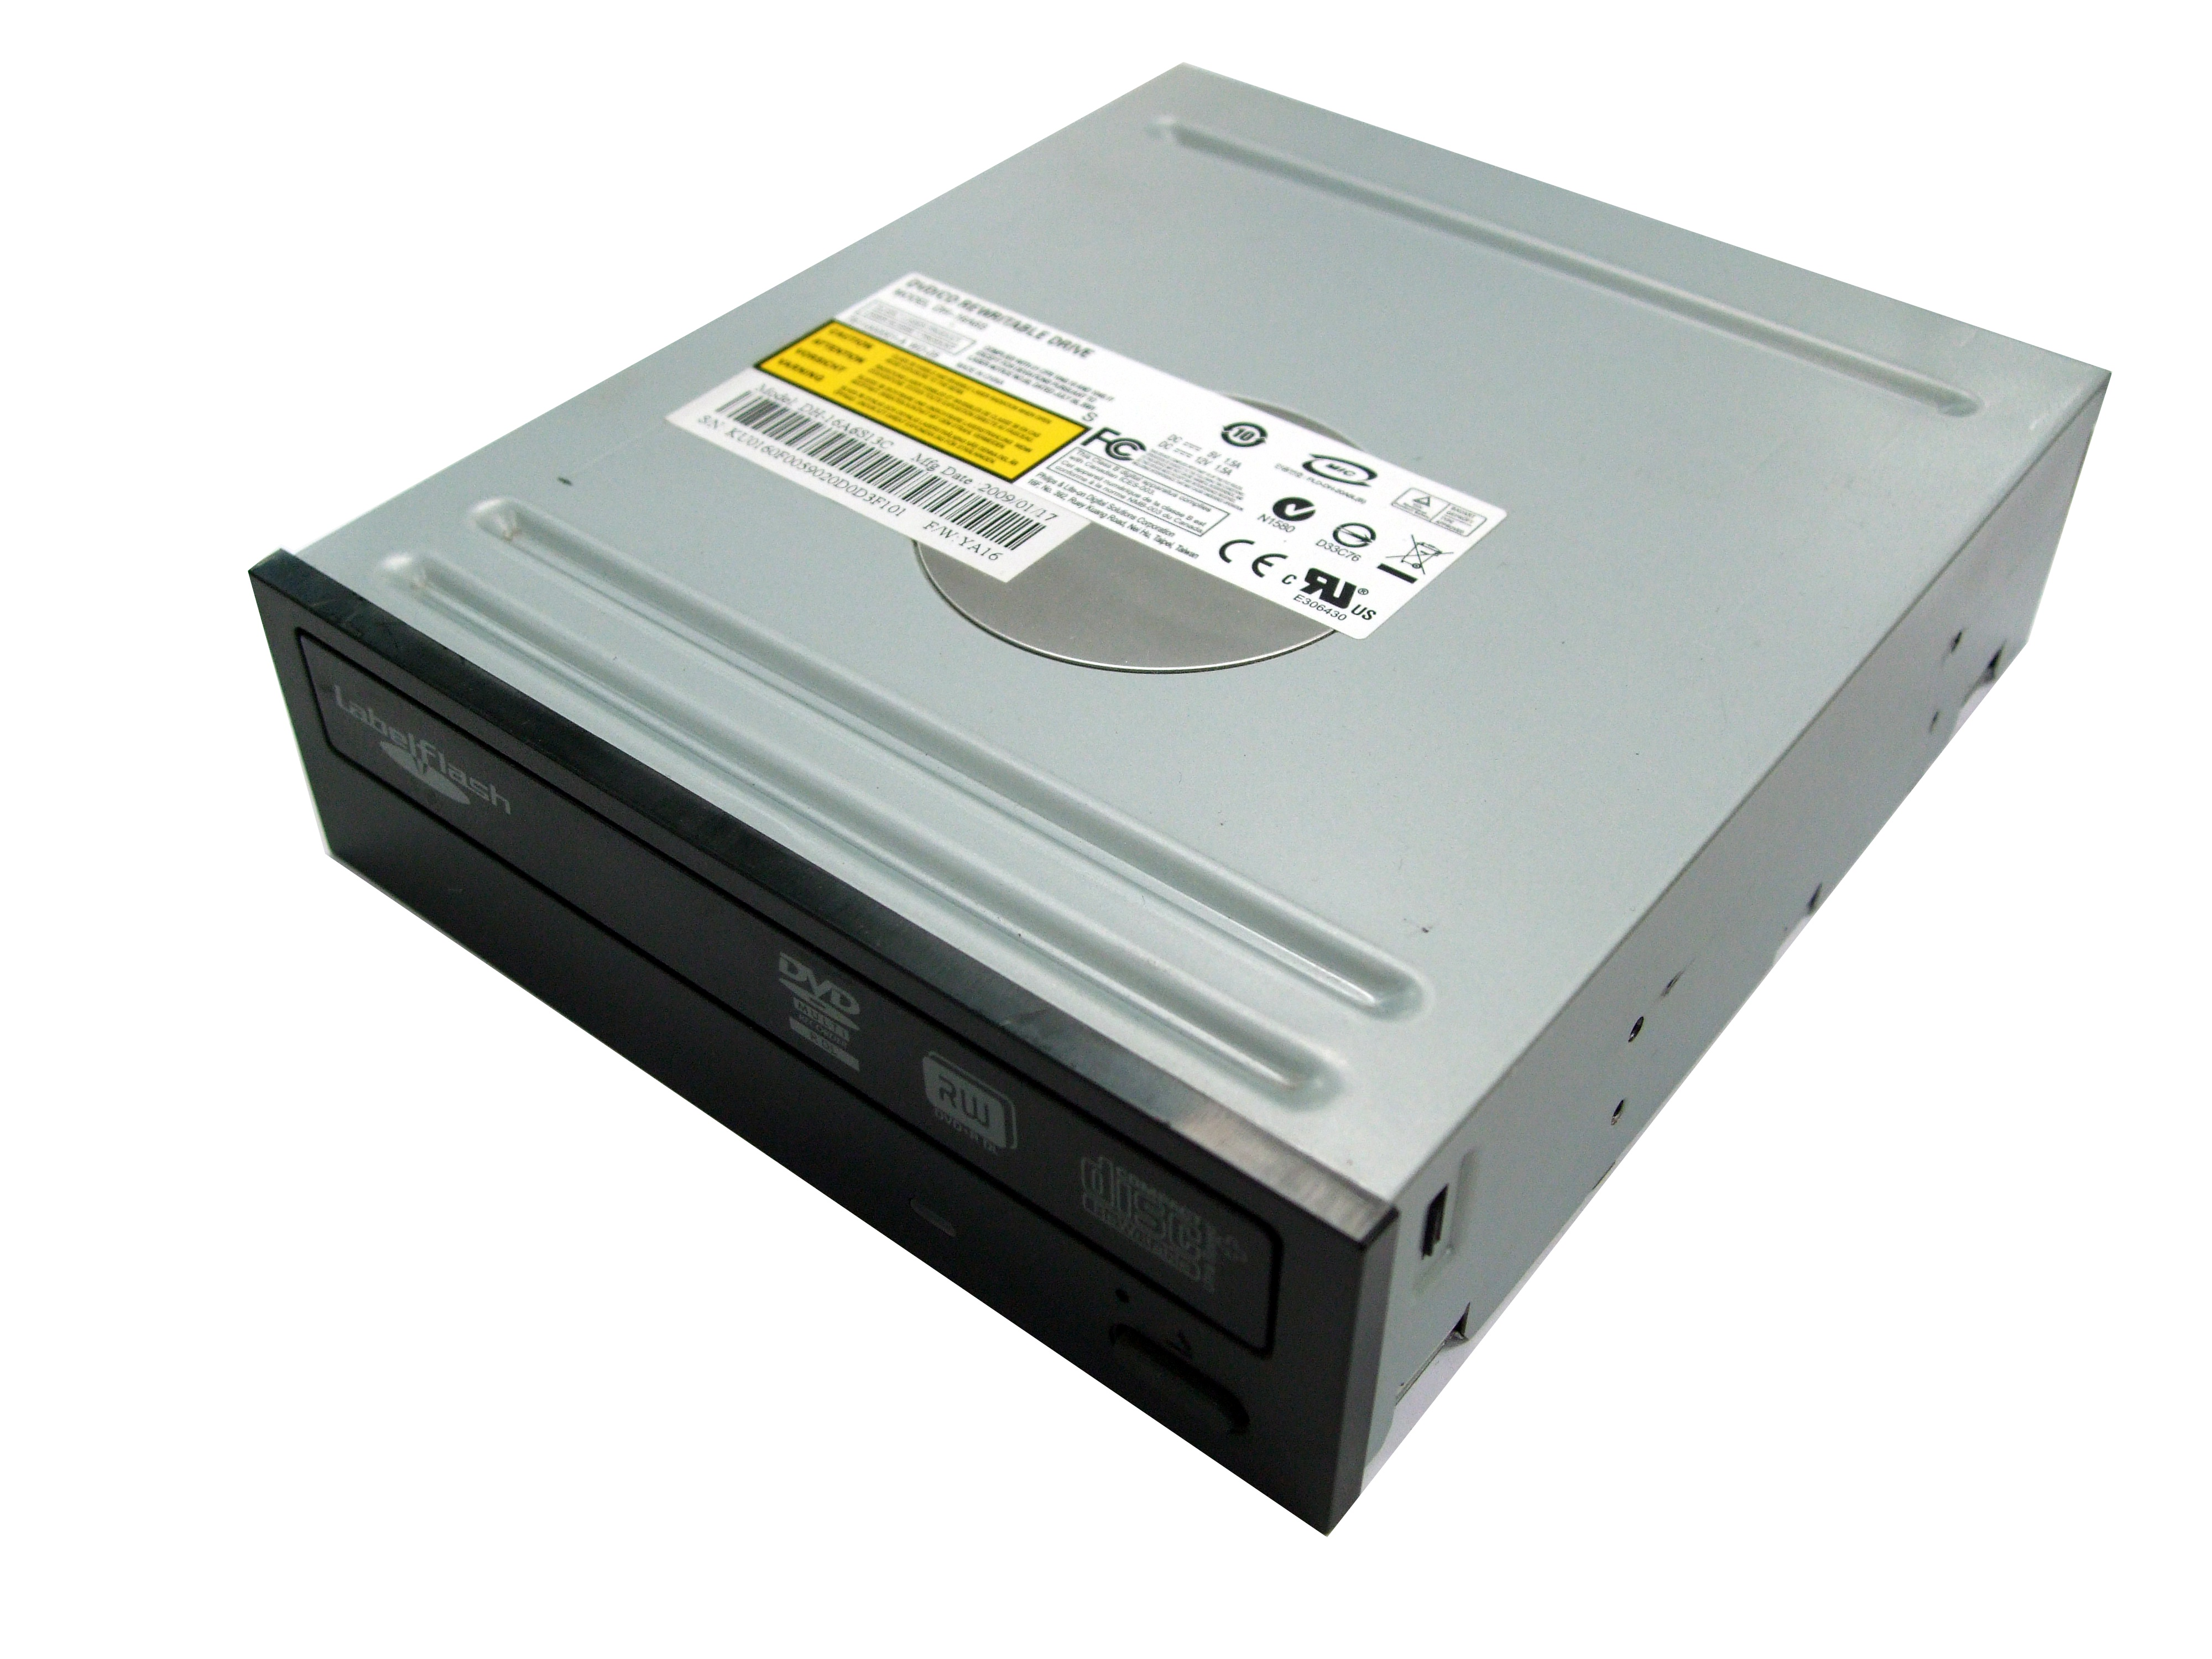 PLDS DVD -RW DH-16A6S ATA Device driver download software